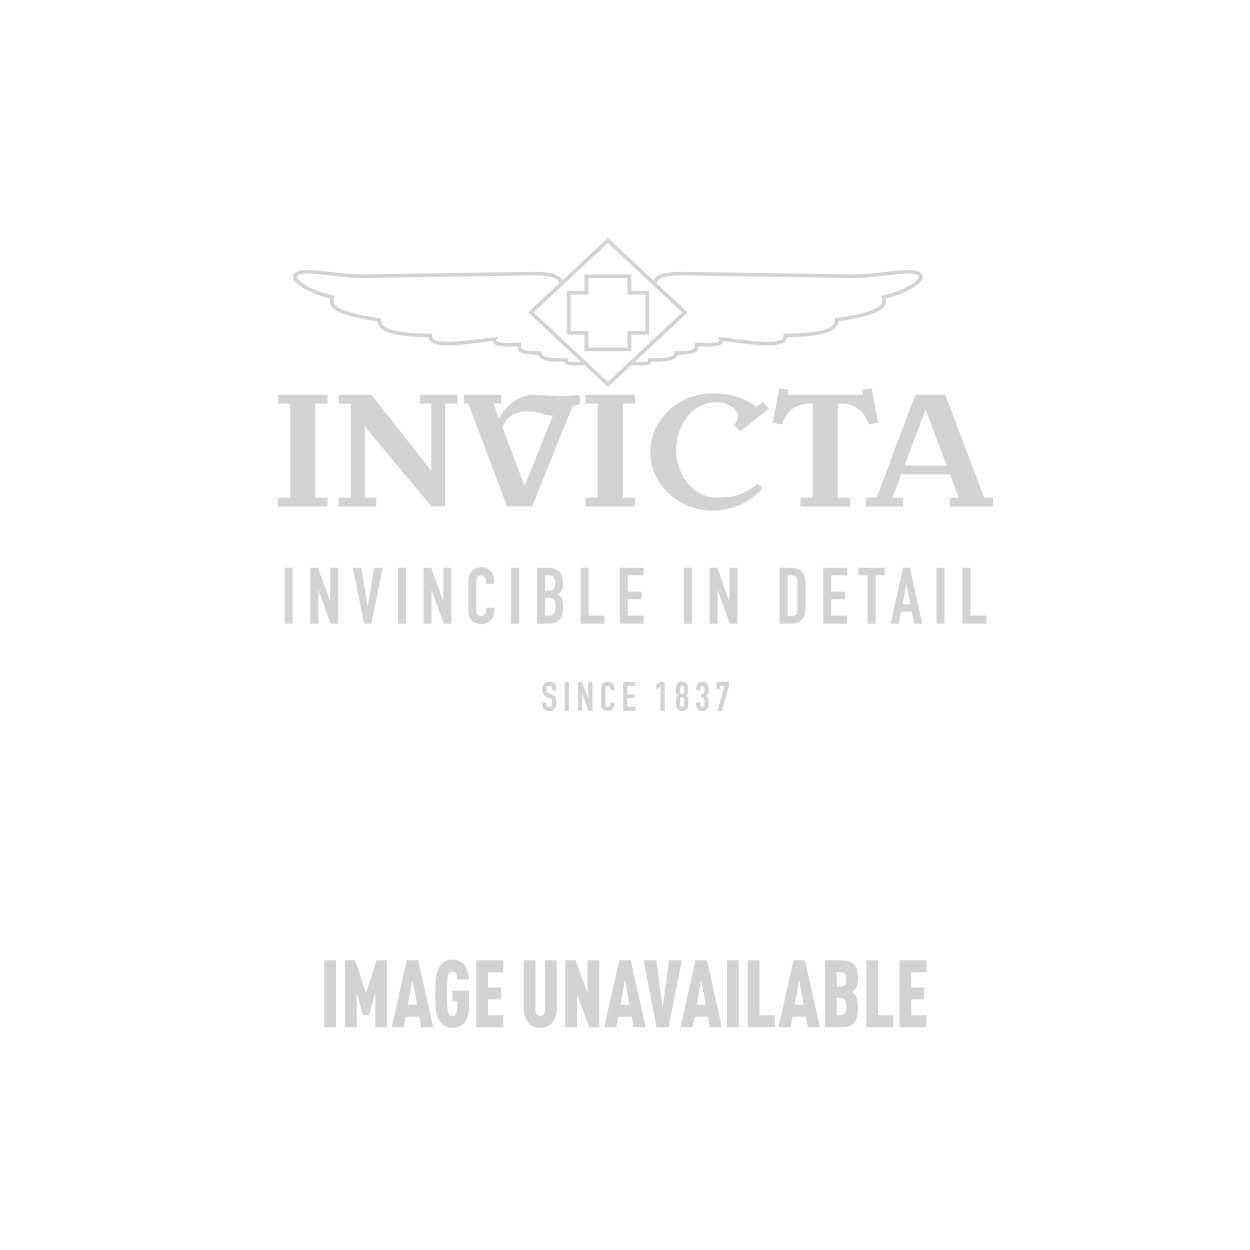 Invicta Specialty Swiss Movement Quartz Watch - Black, Stainless Steel case Stainless Steel band - Model 0389